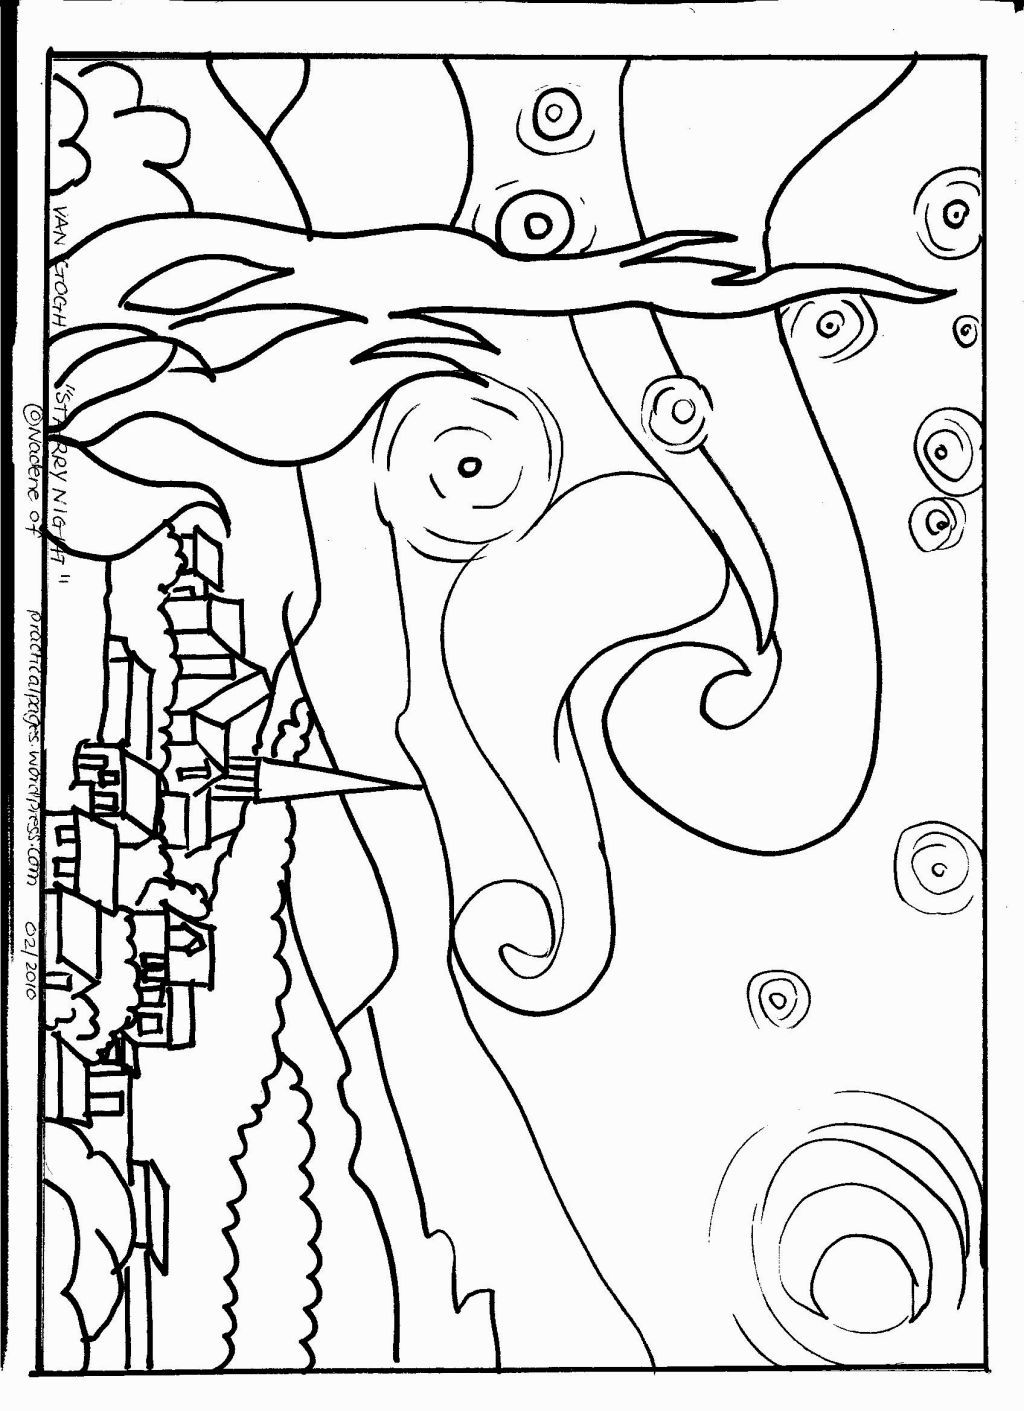 Famous artists coloring pages